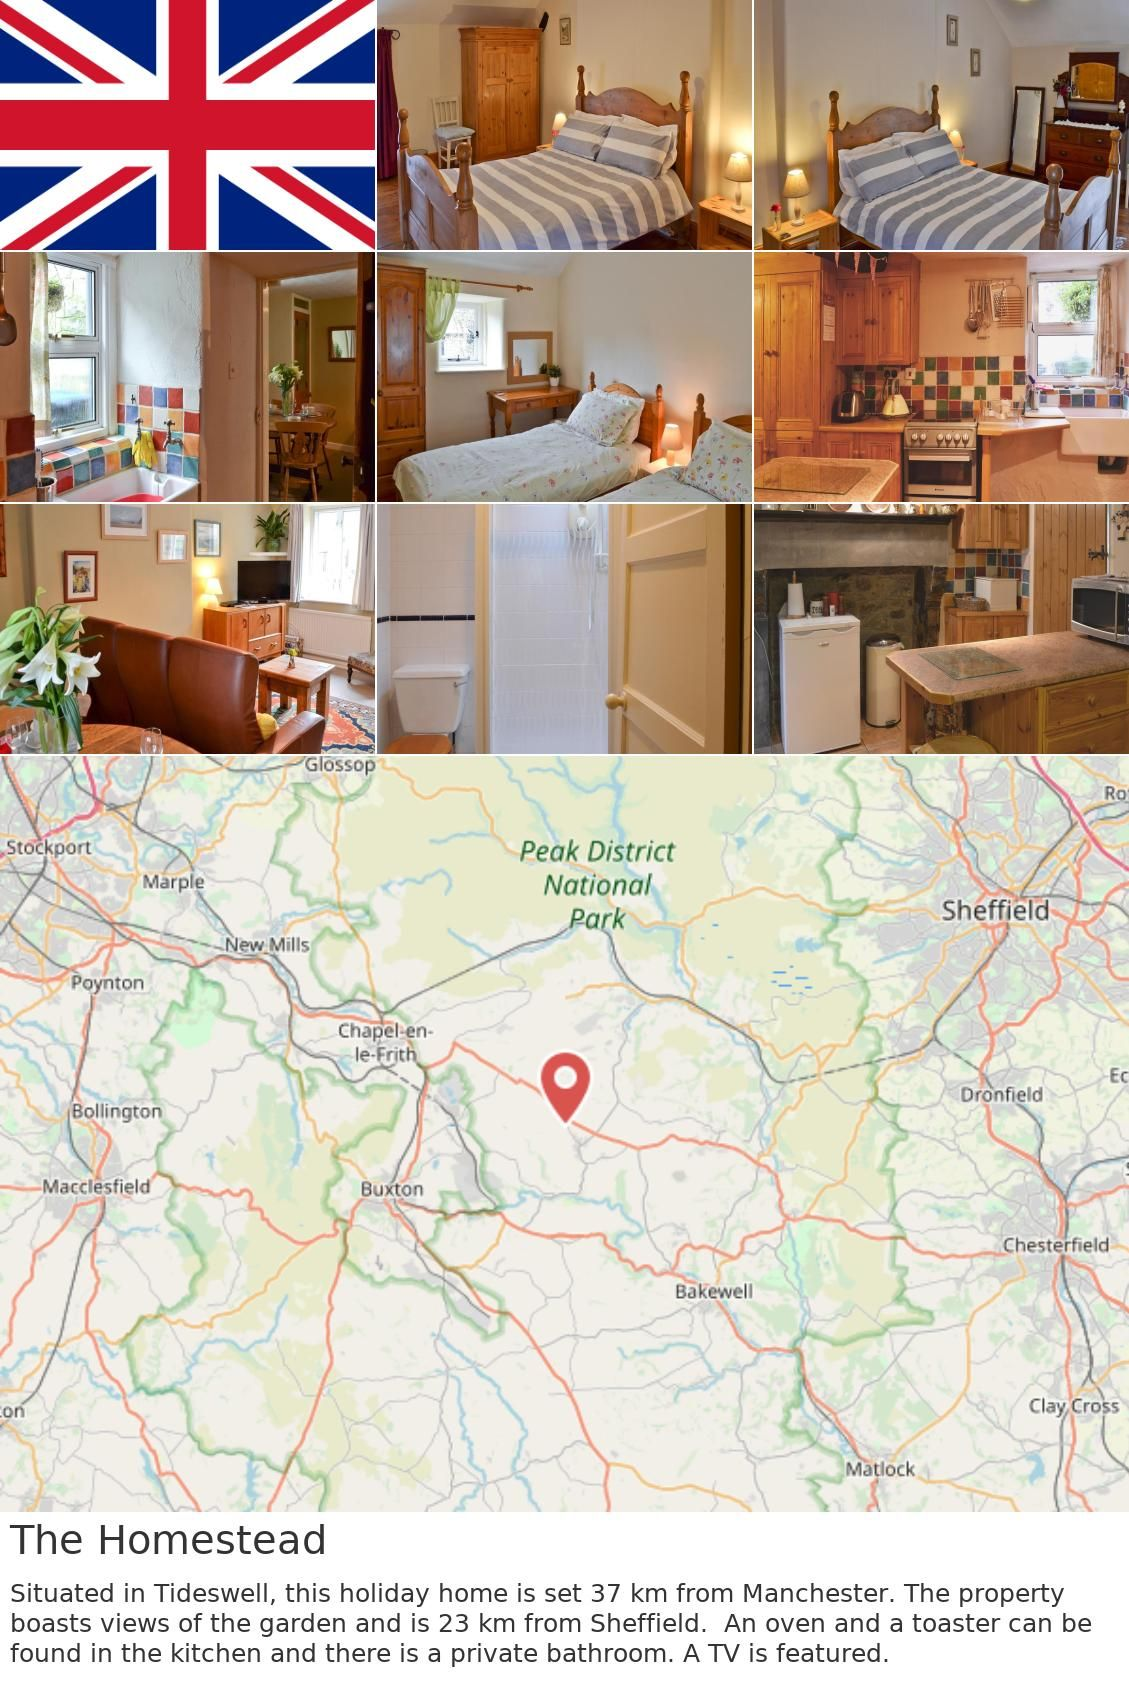 britain uk tideswell The Homestead. Situated in